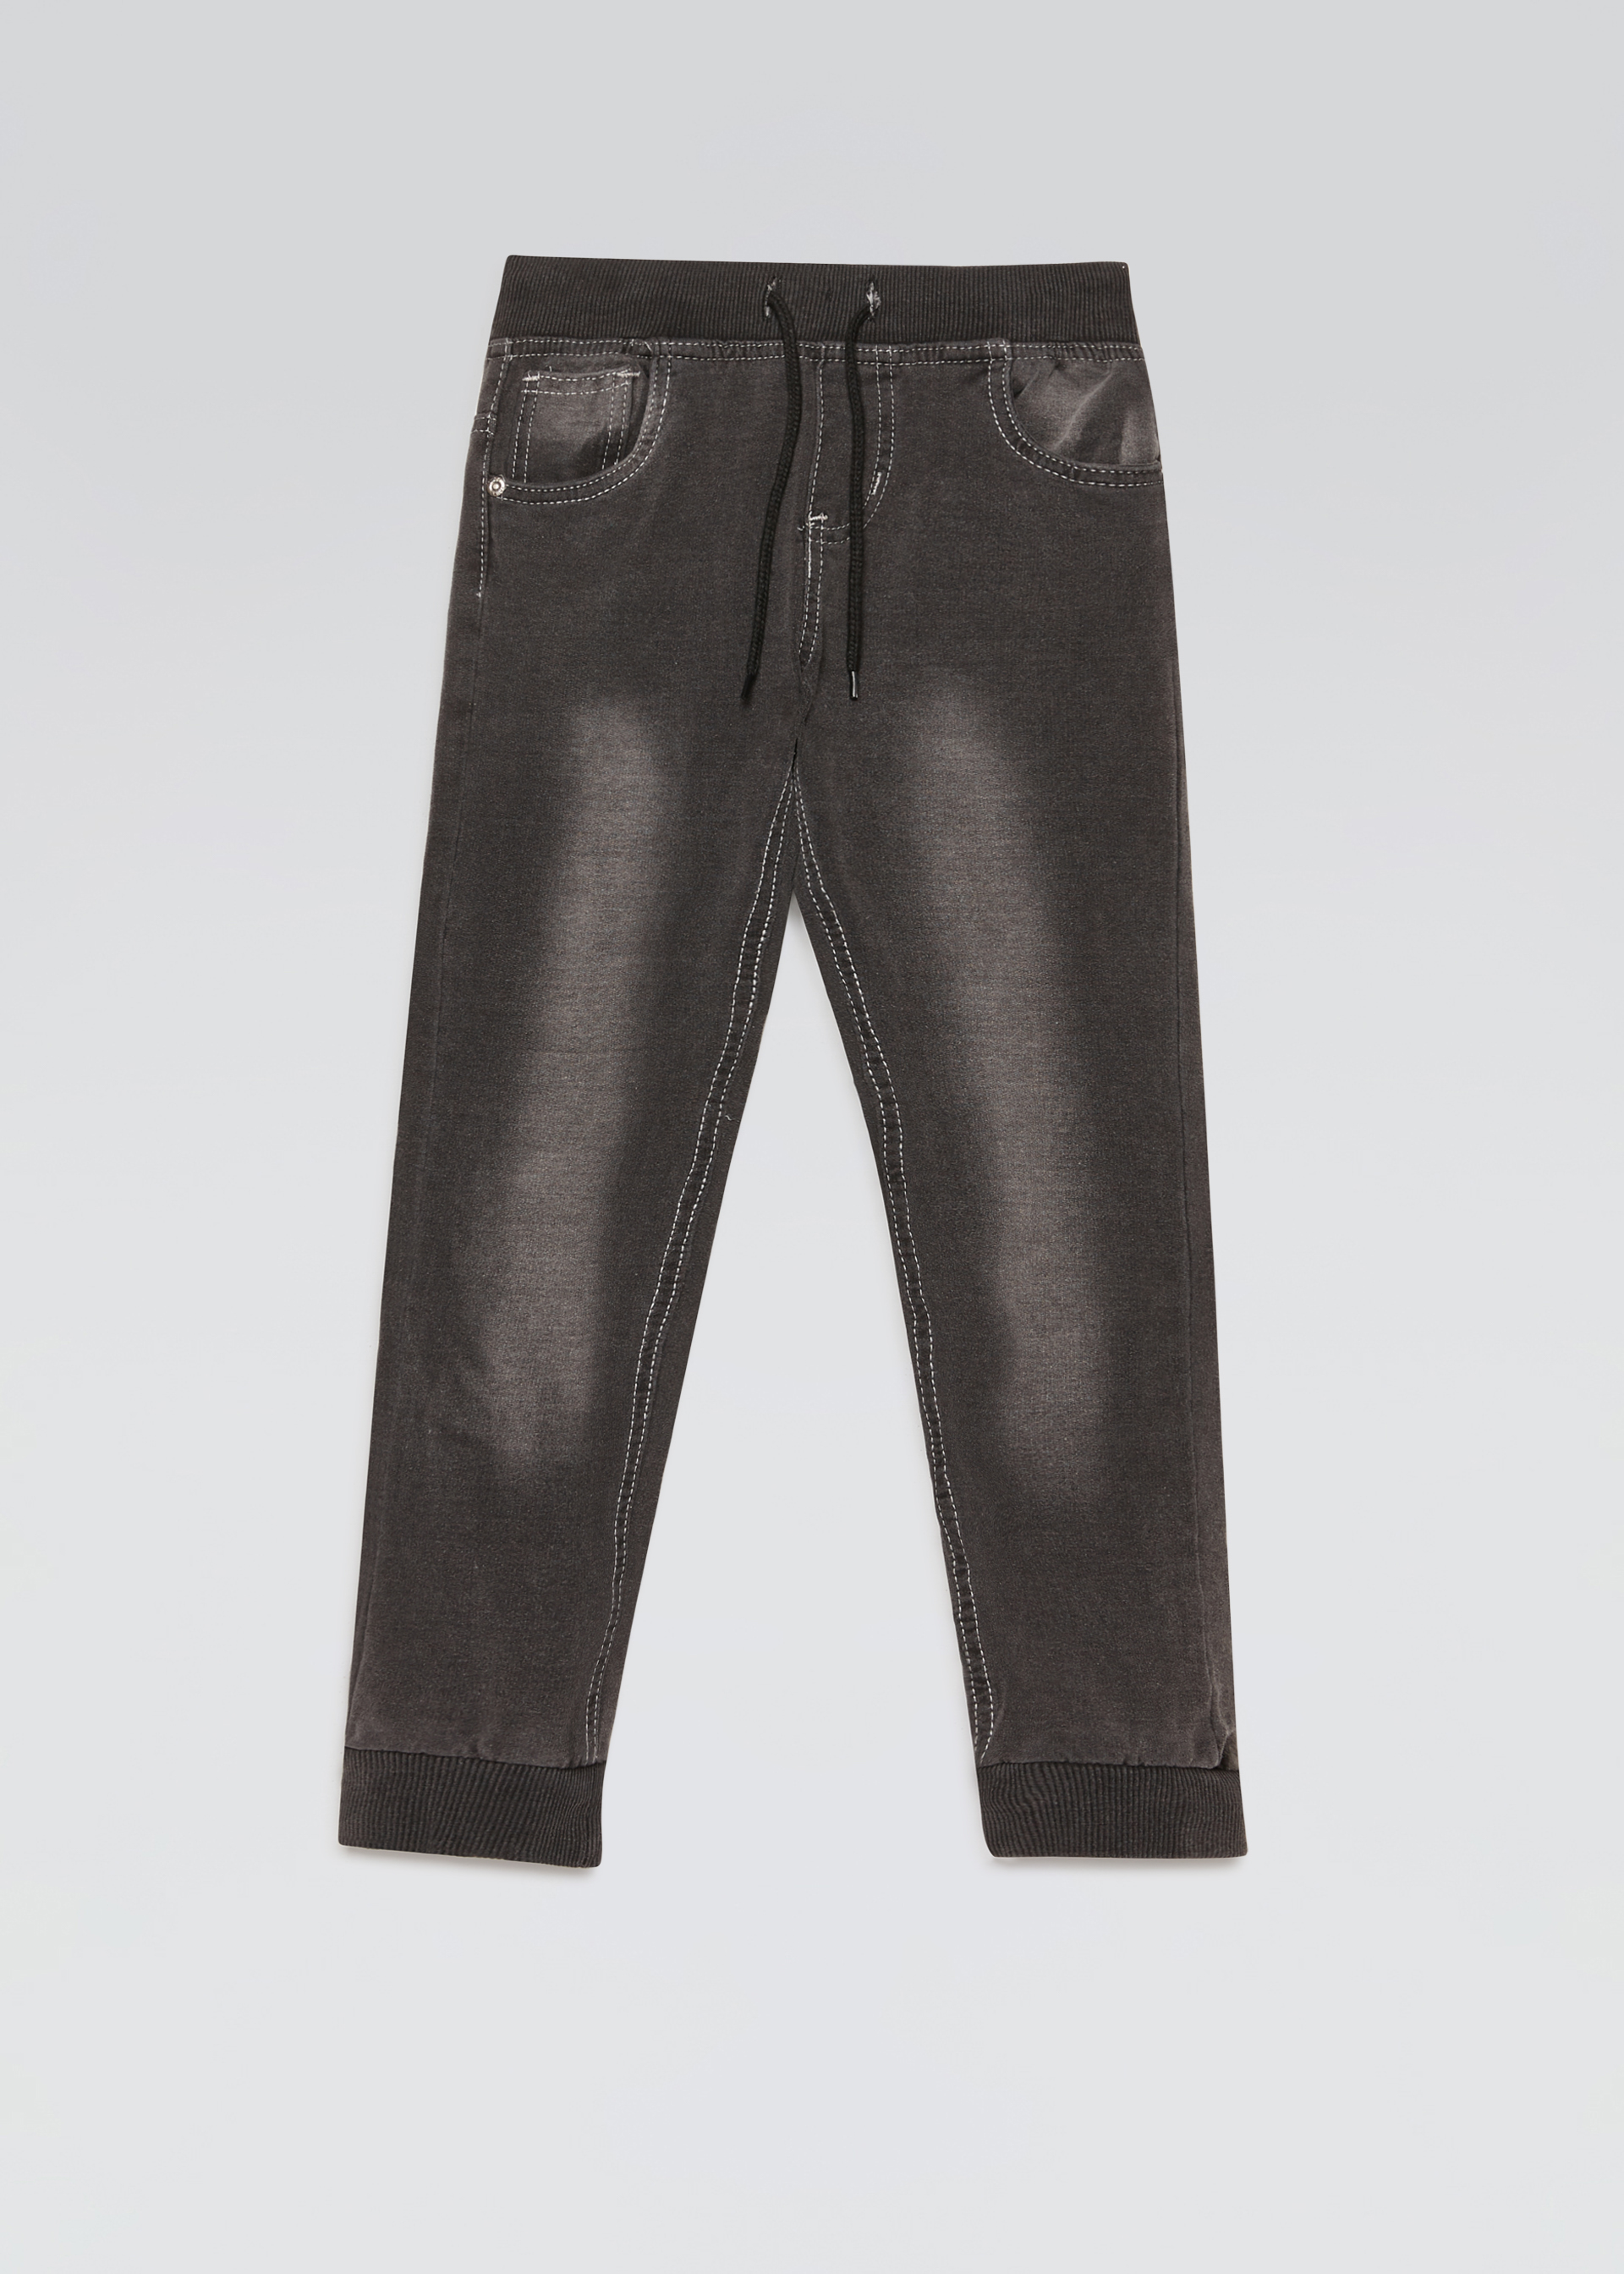 Pantaloni denim in felpa